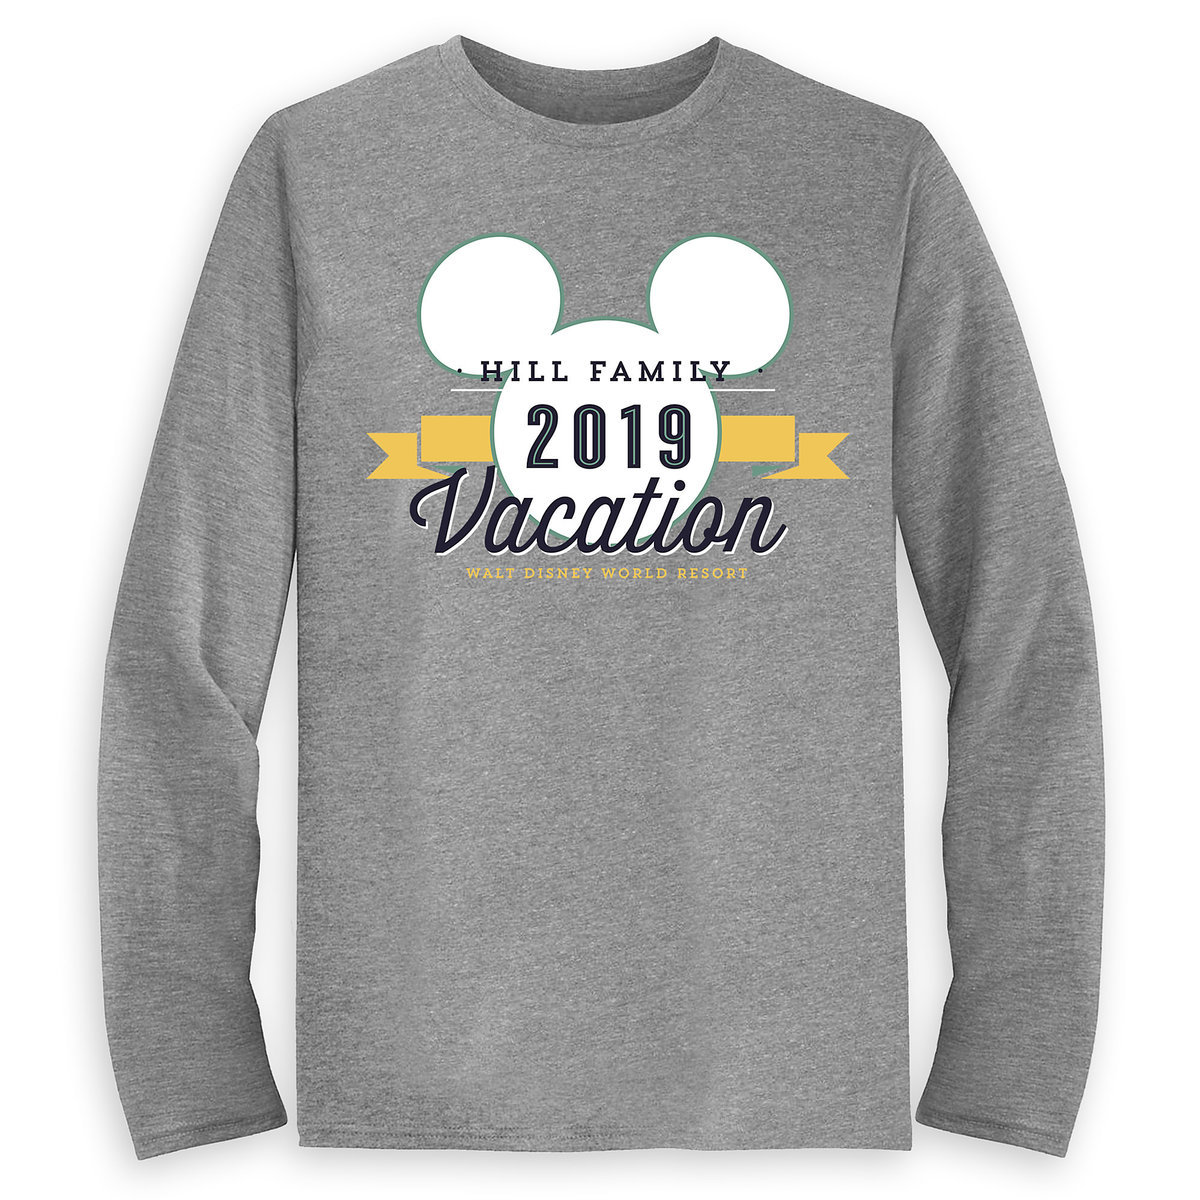 b896d5c2 Product Image of Men's Mickey Mouse Family Vacation Long Sleeve Shirt -  Walt Disney World Resort